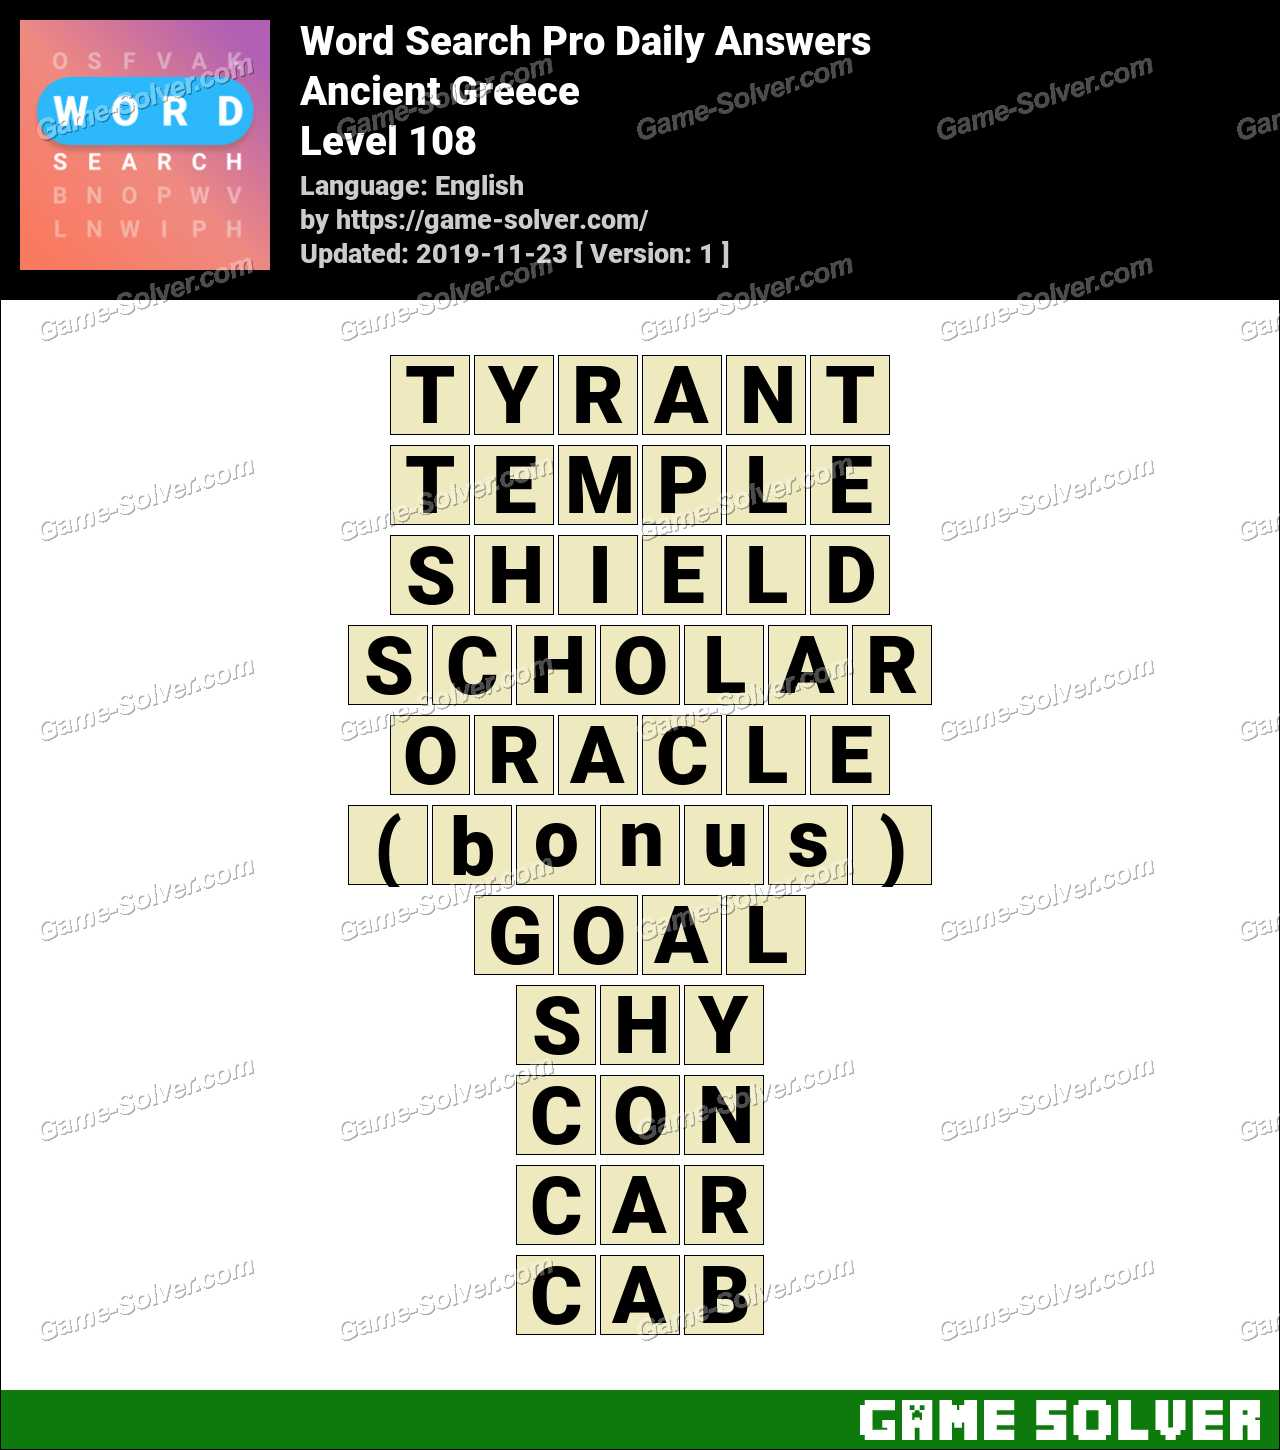 Ancient Greece Word Search Puzzle Key